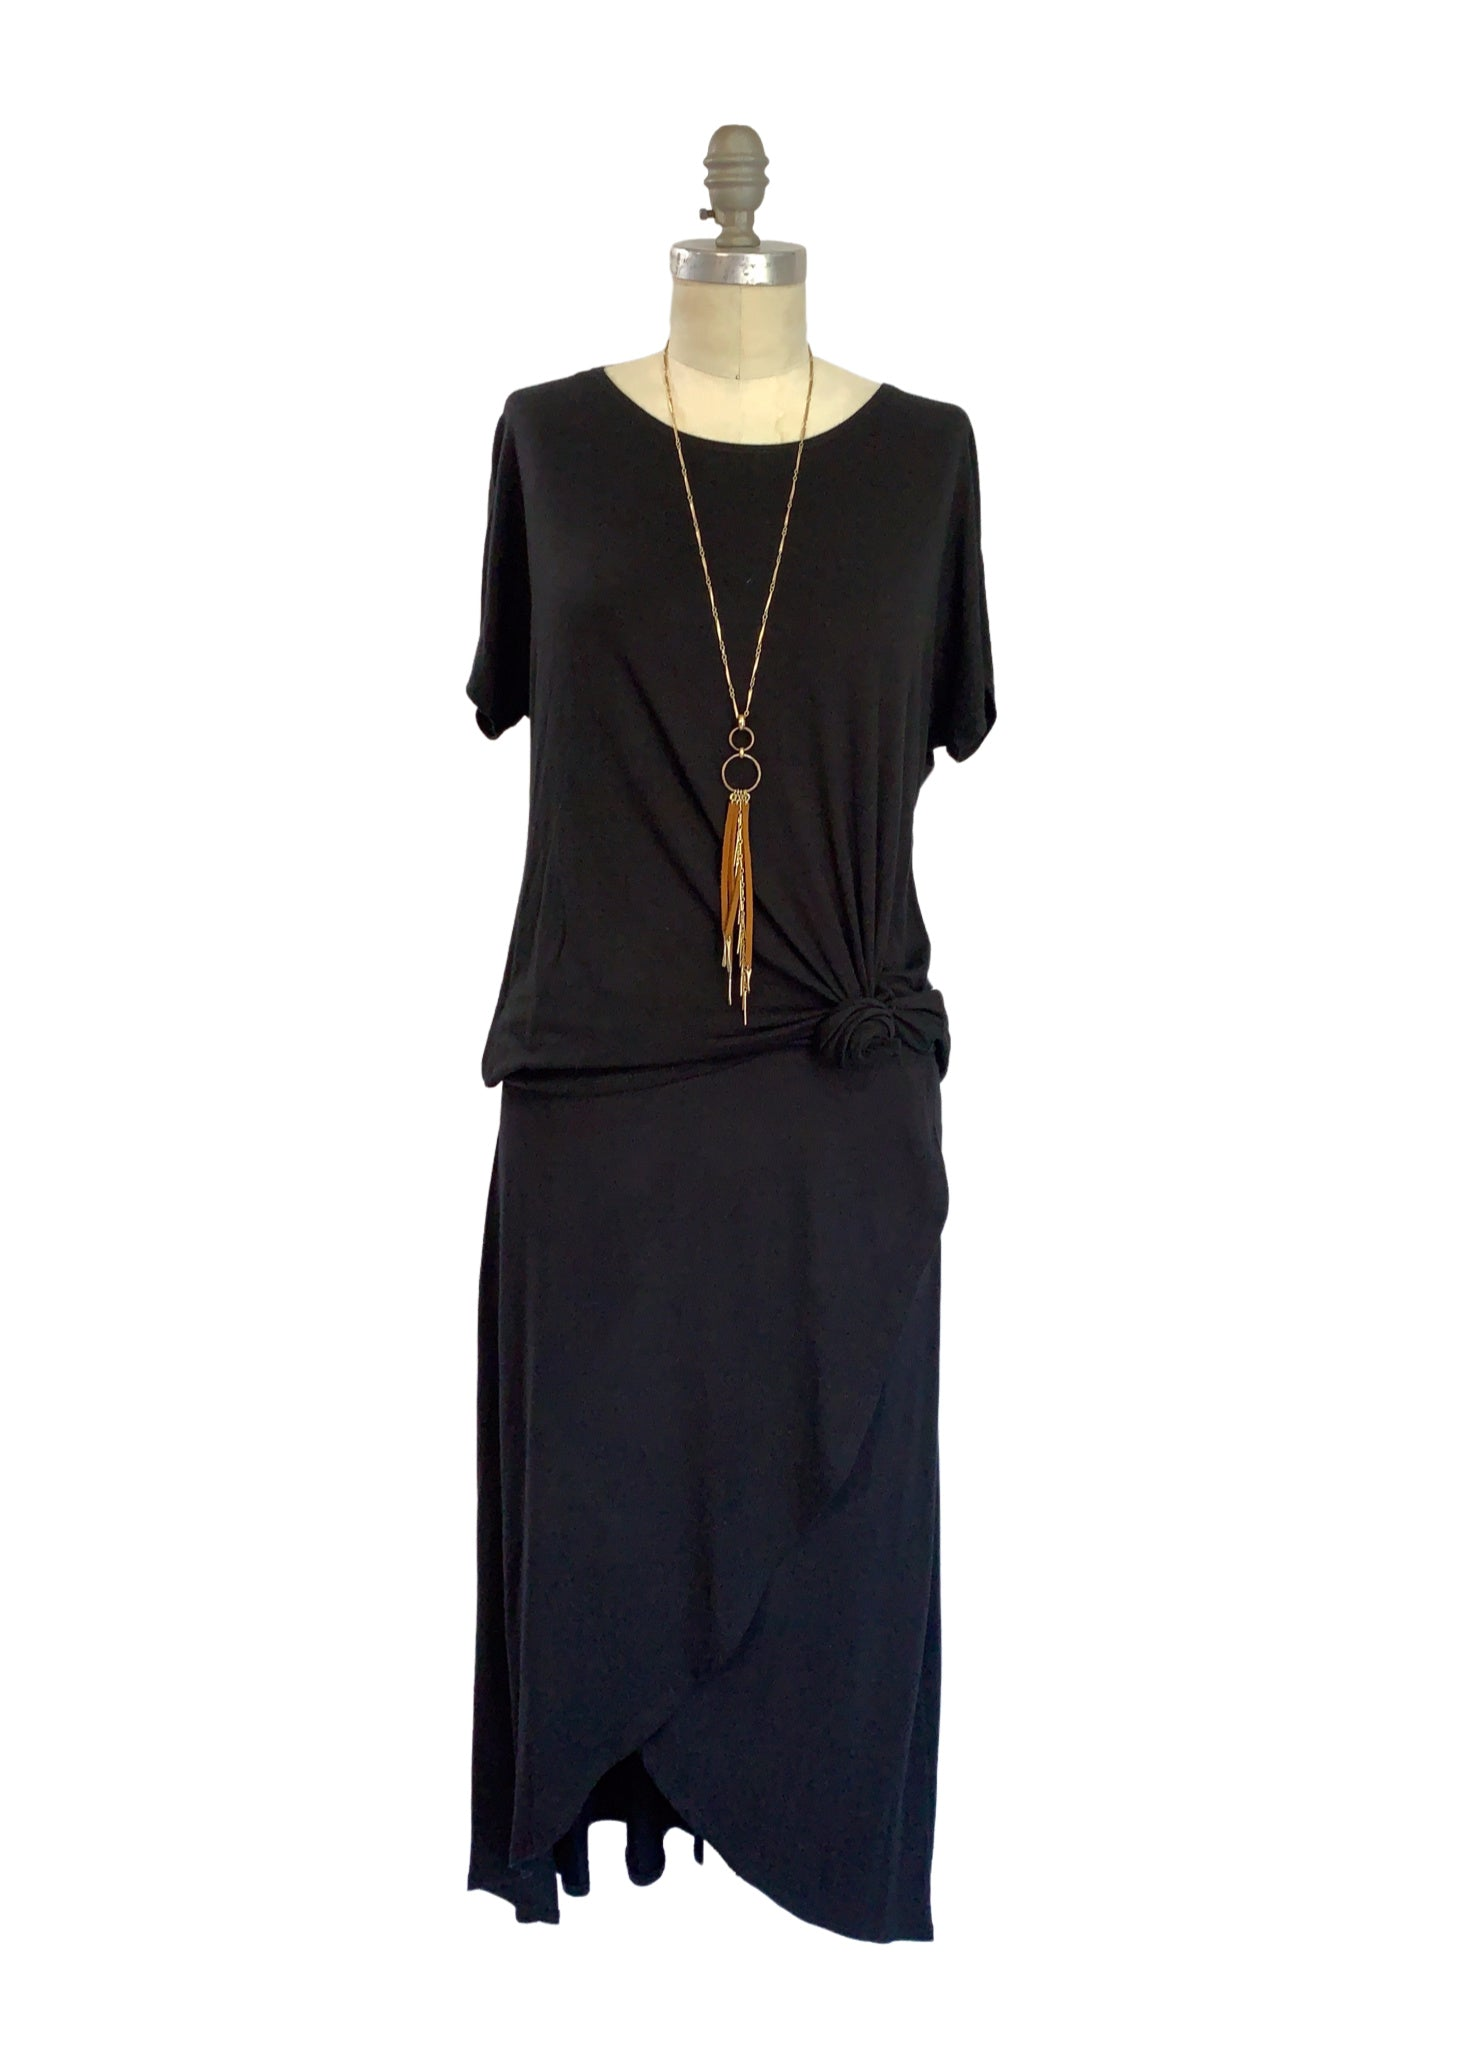 Short Sleeve Knit Tunic in Black